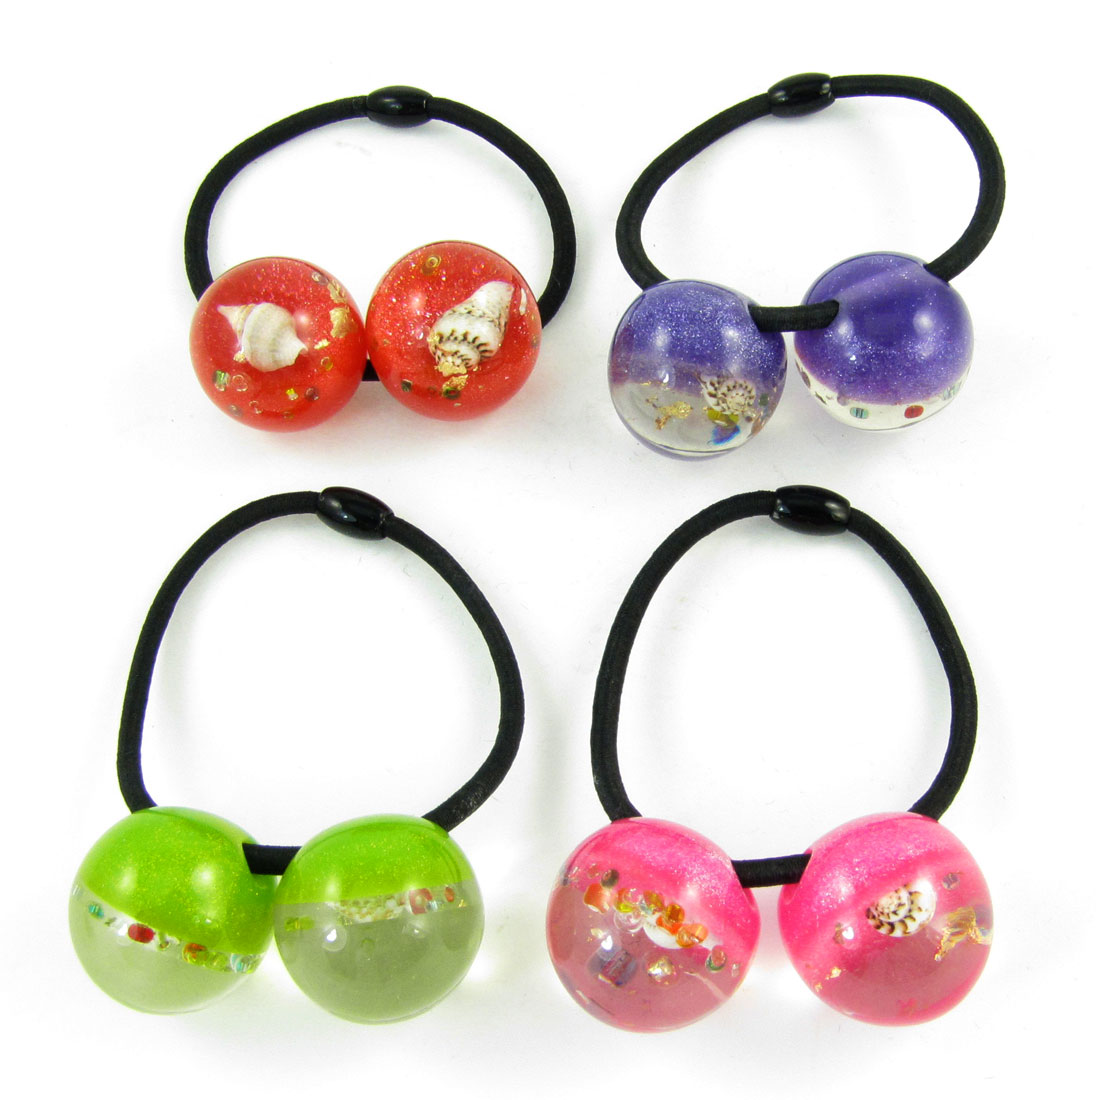 4pcs Shell Inlaid Assorted Color Beads Decor Elastic Hair Band Tie for Lady